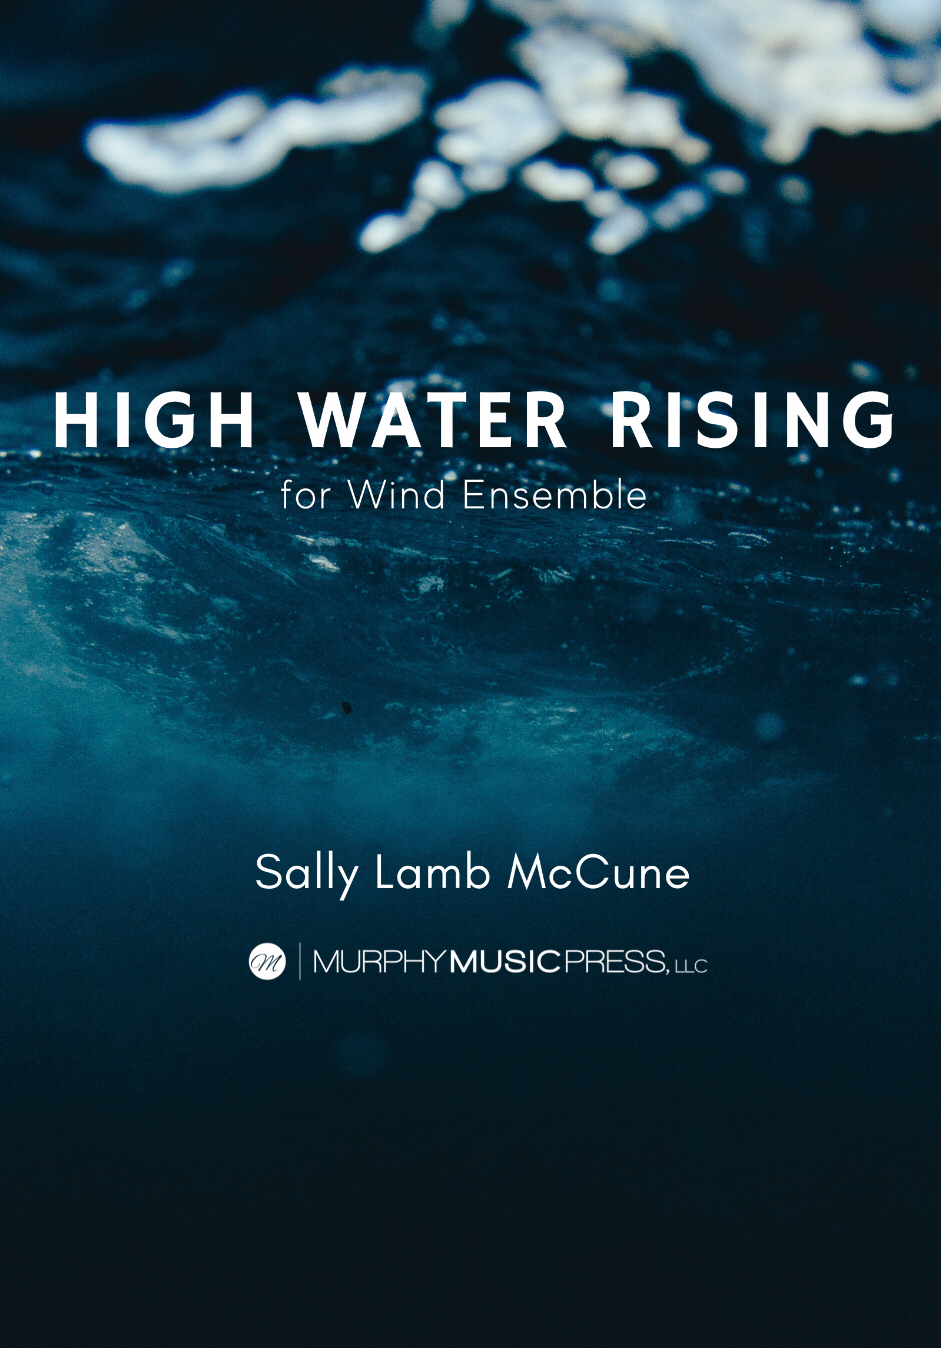 High Water Rising by Sally Lamb McCune